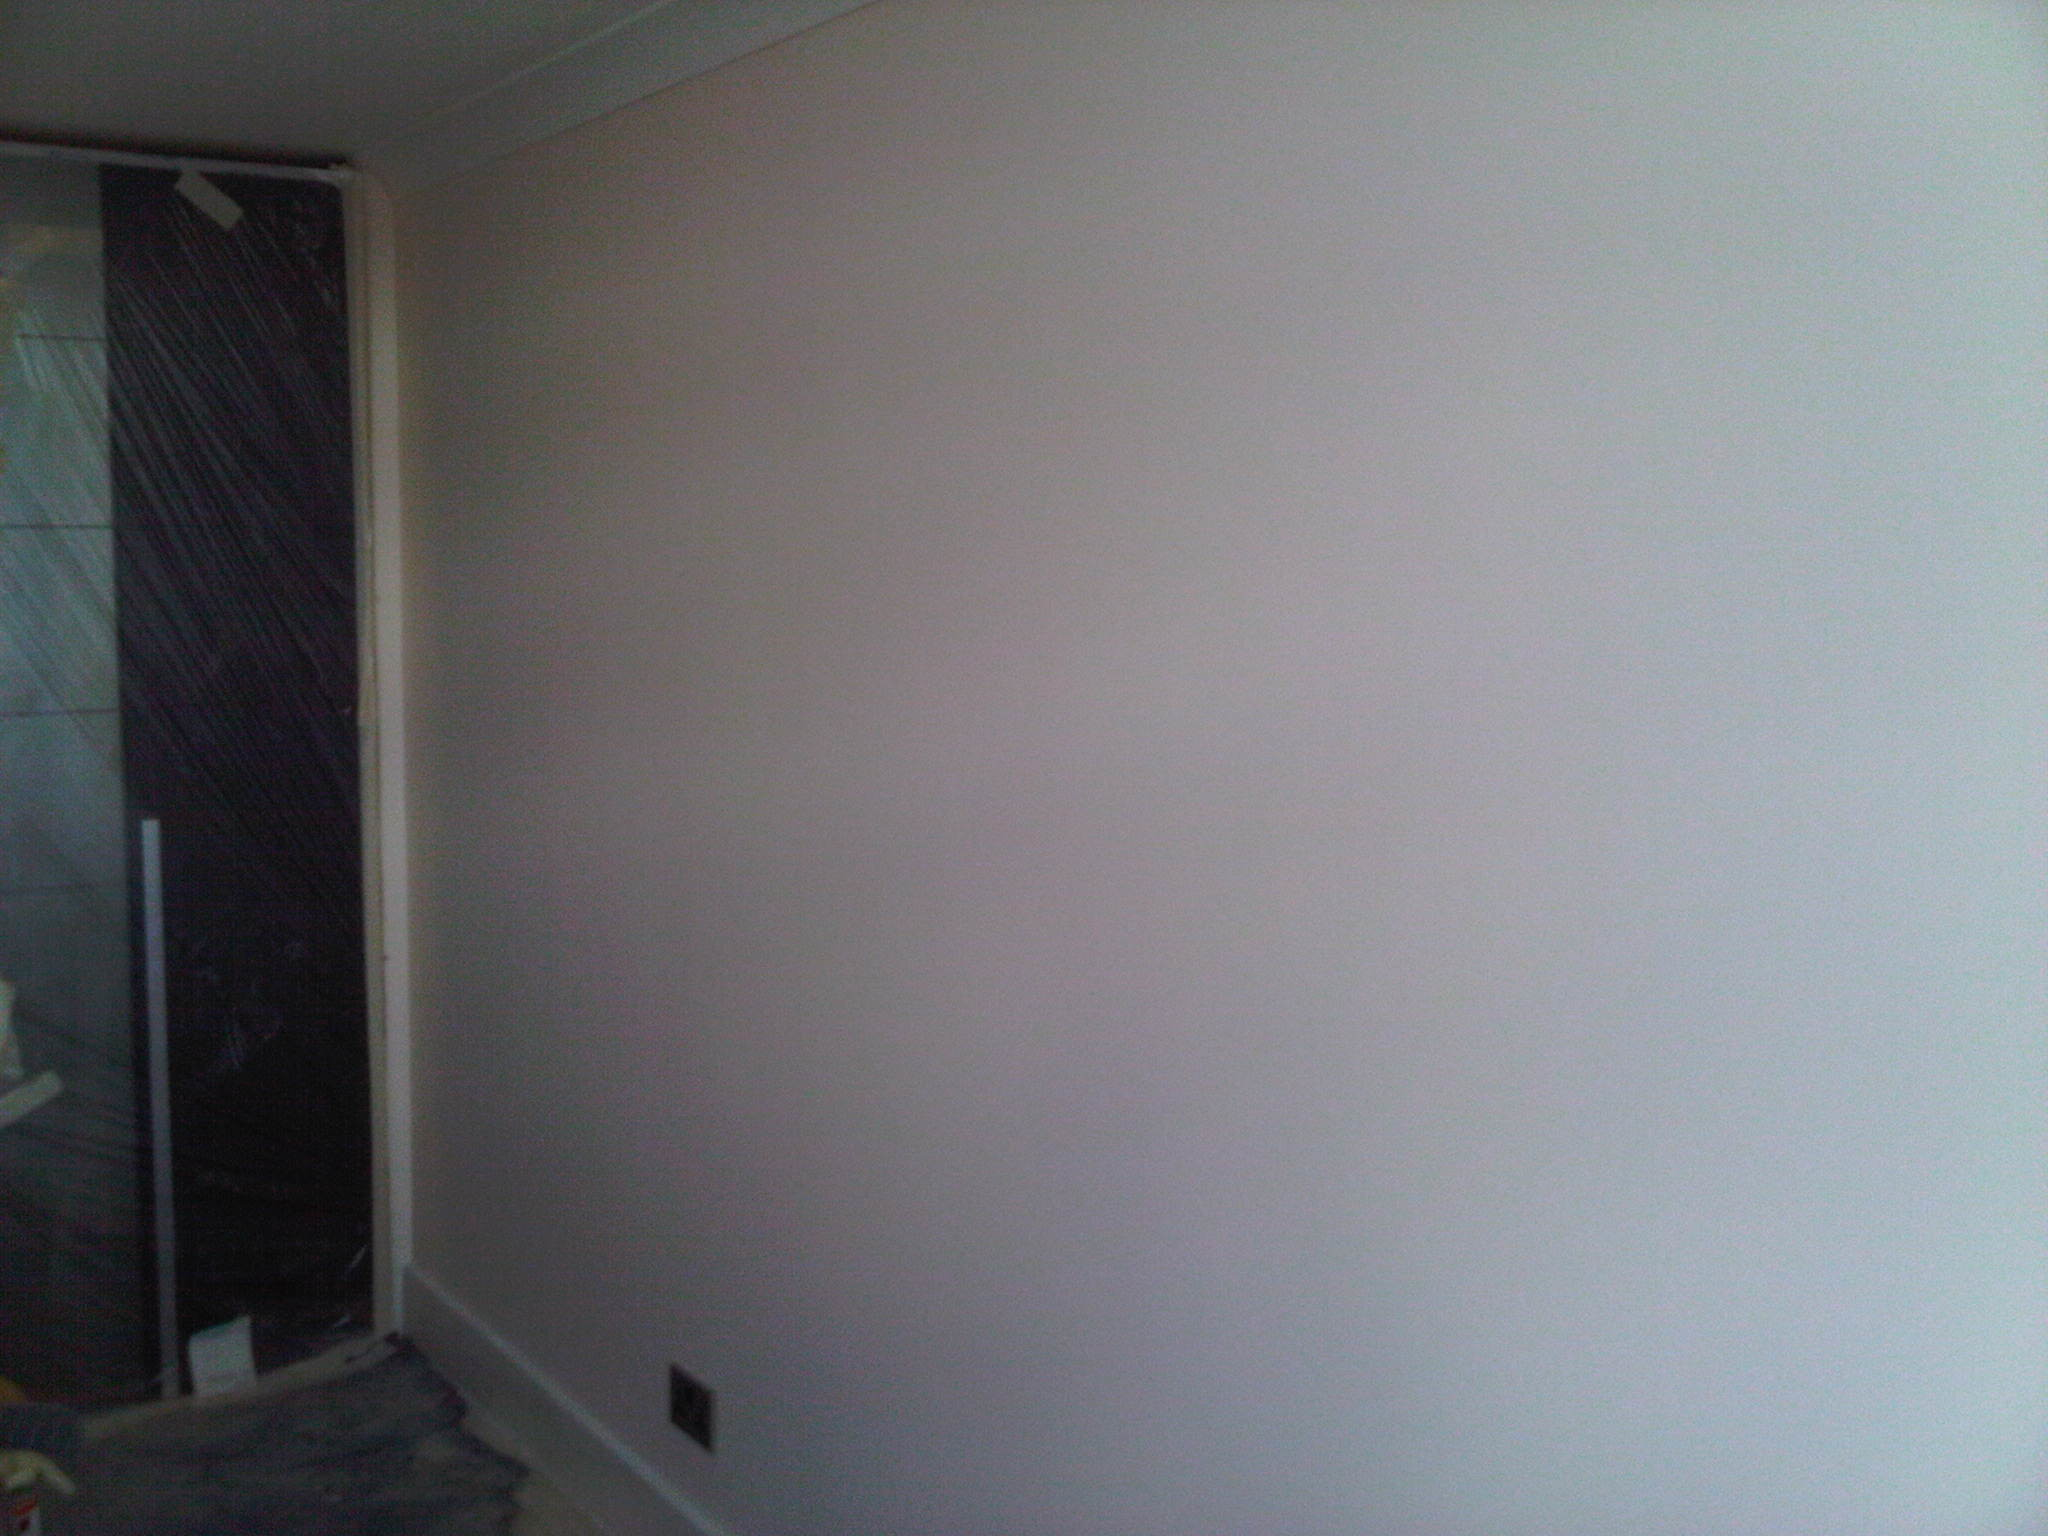 2048x1536 party wall soundproofing (3)